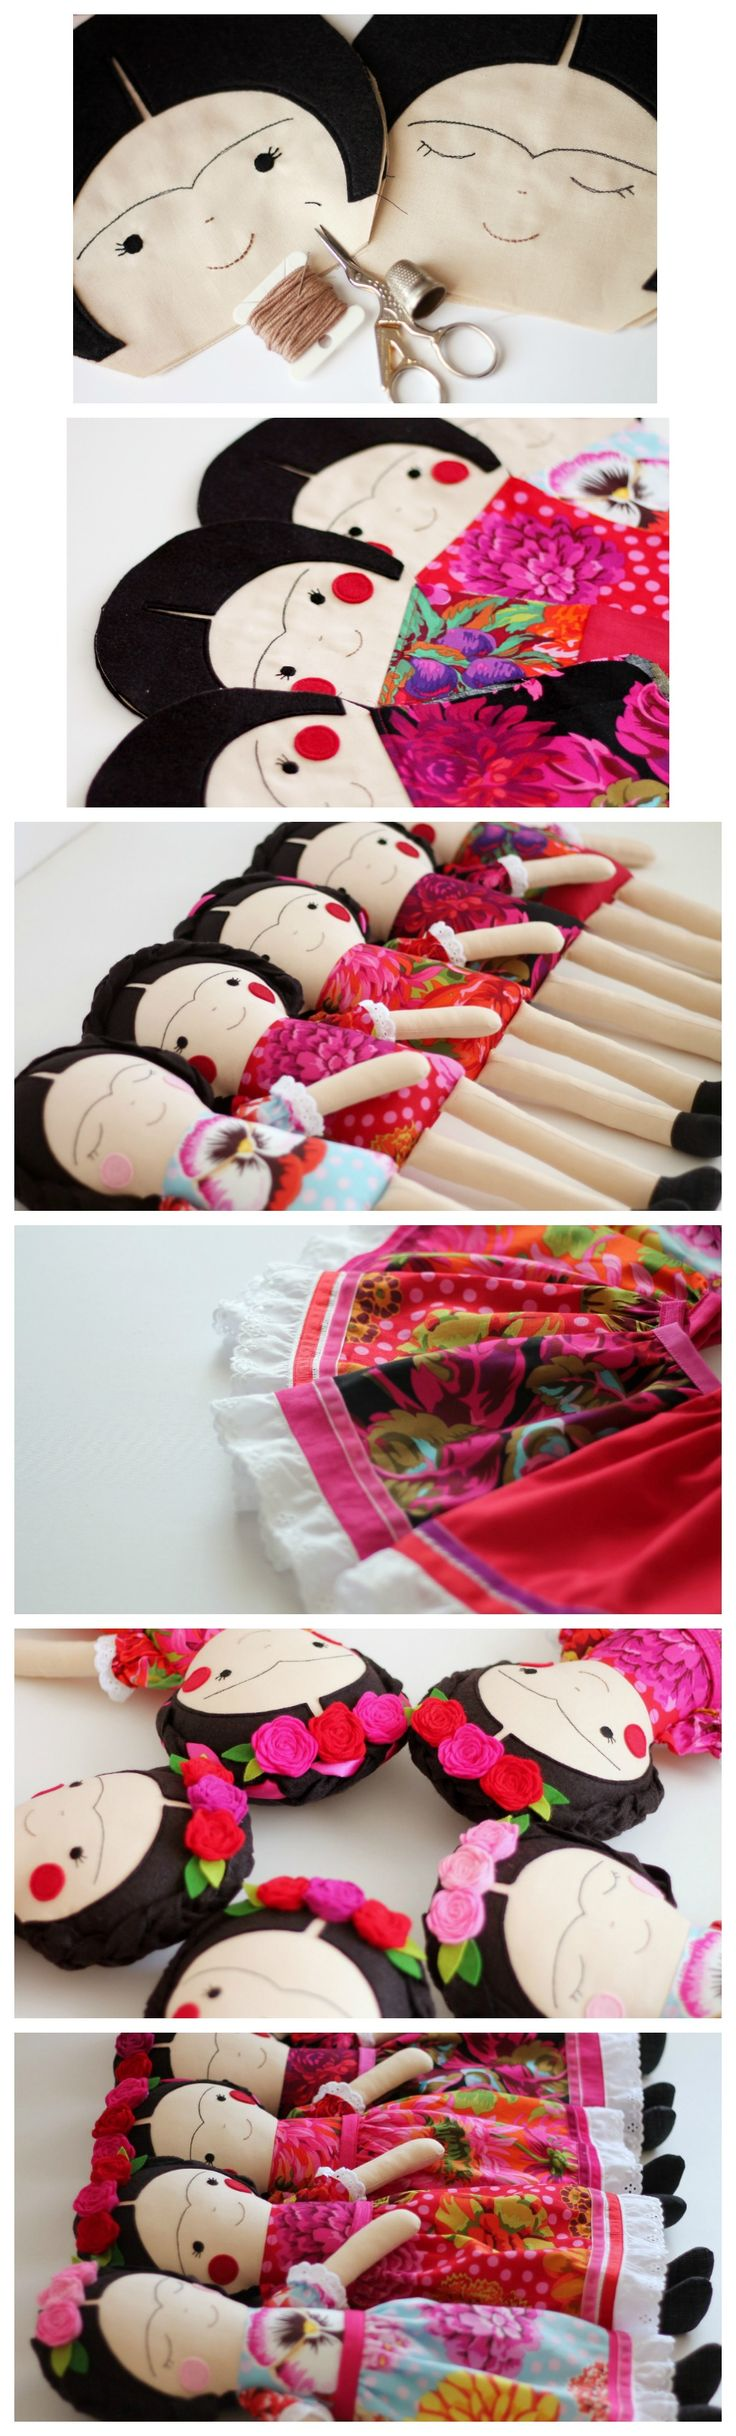 The making of Frida Kahlo handmade dolls by Anabela Félix. Heirloom and…